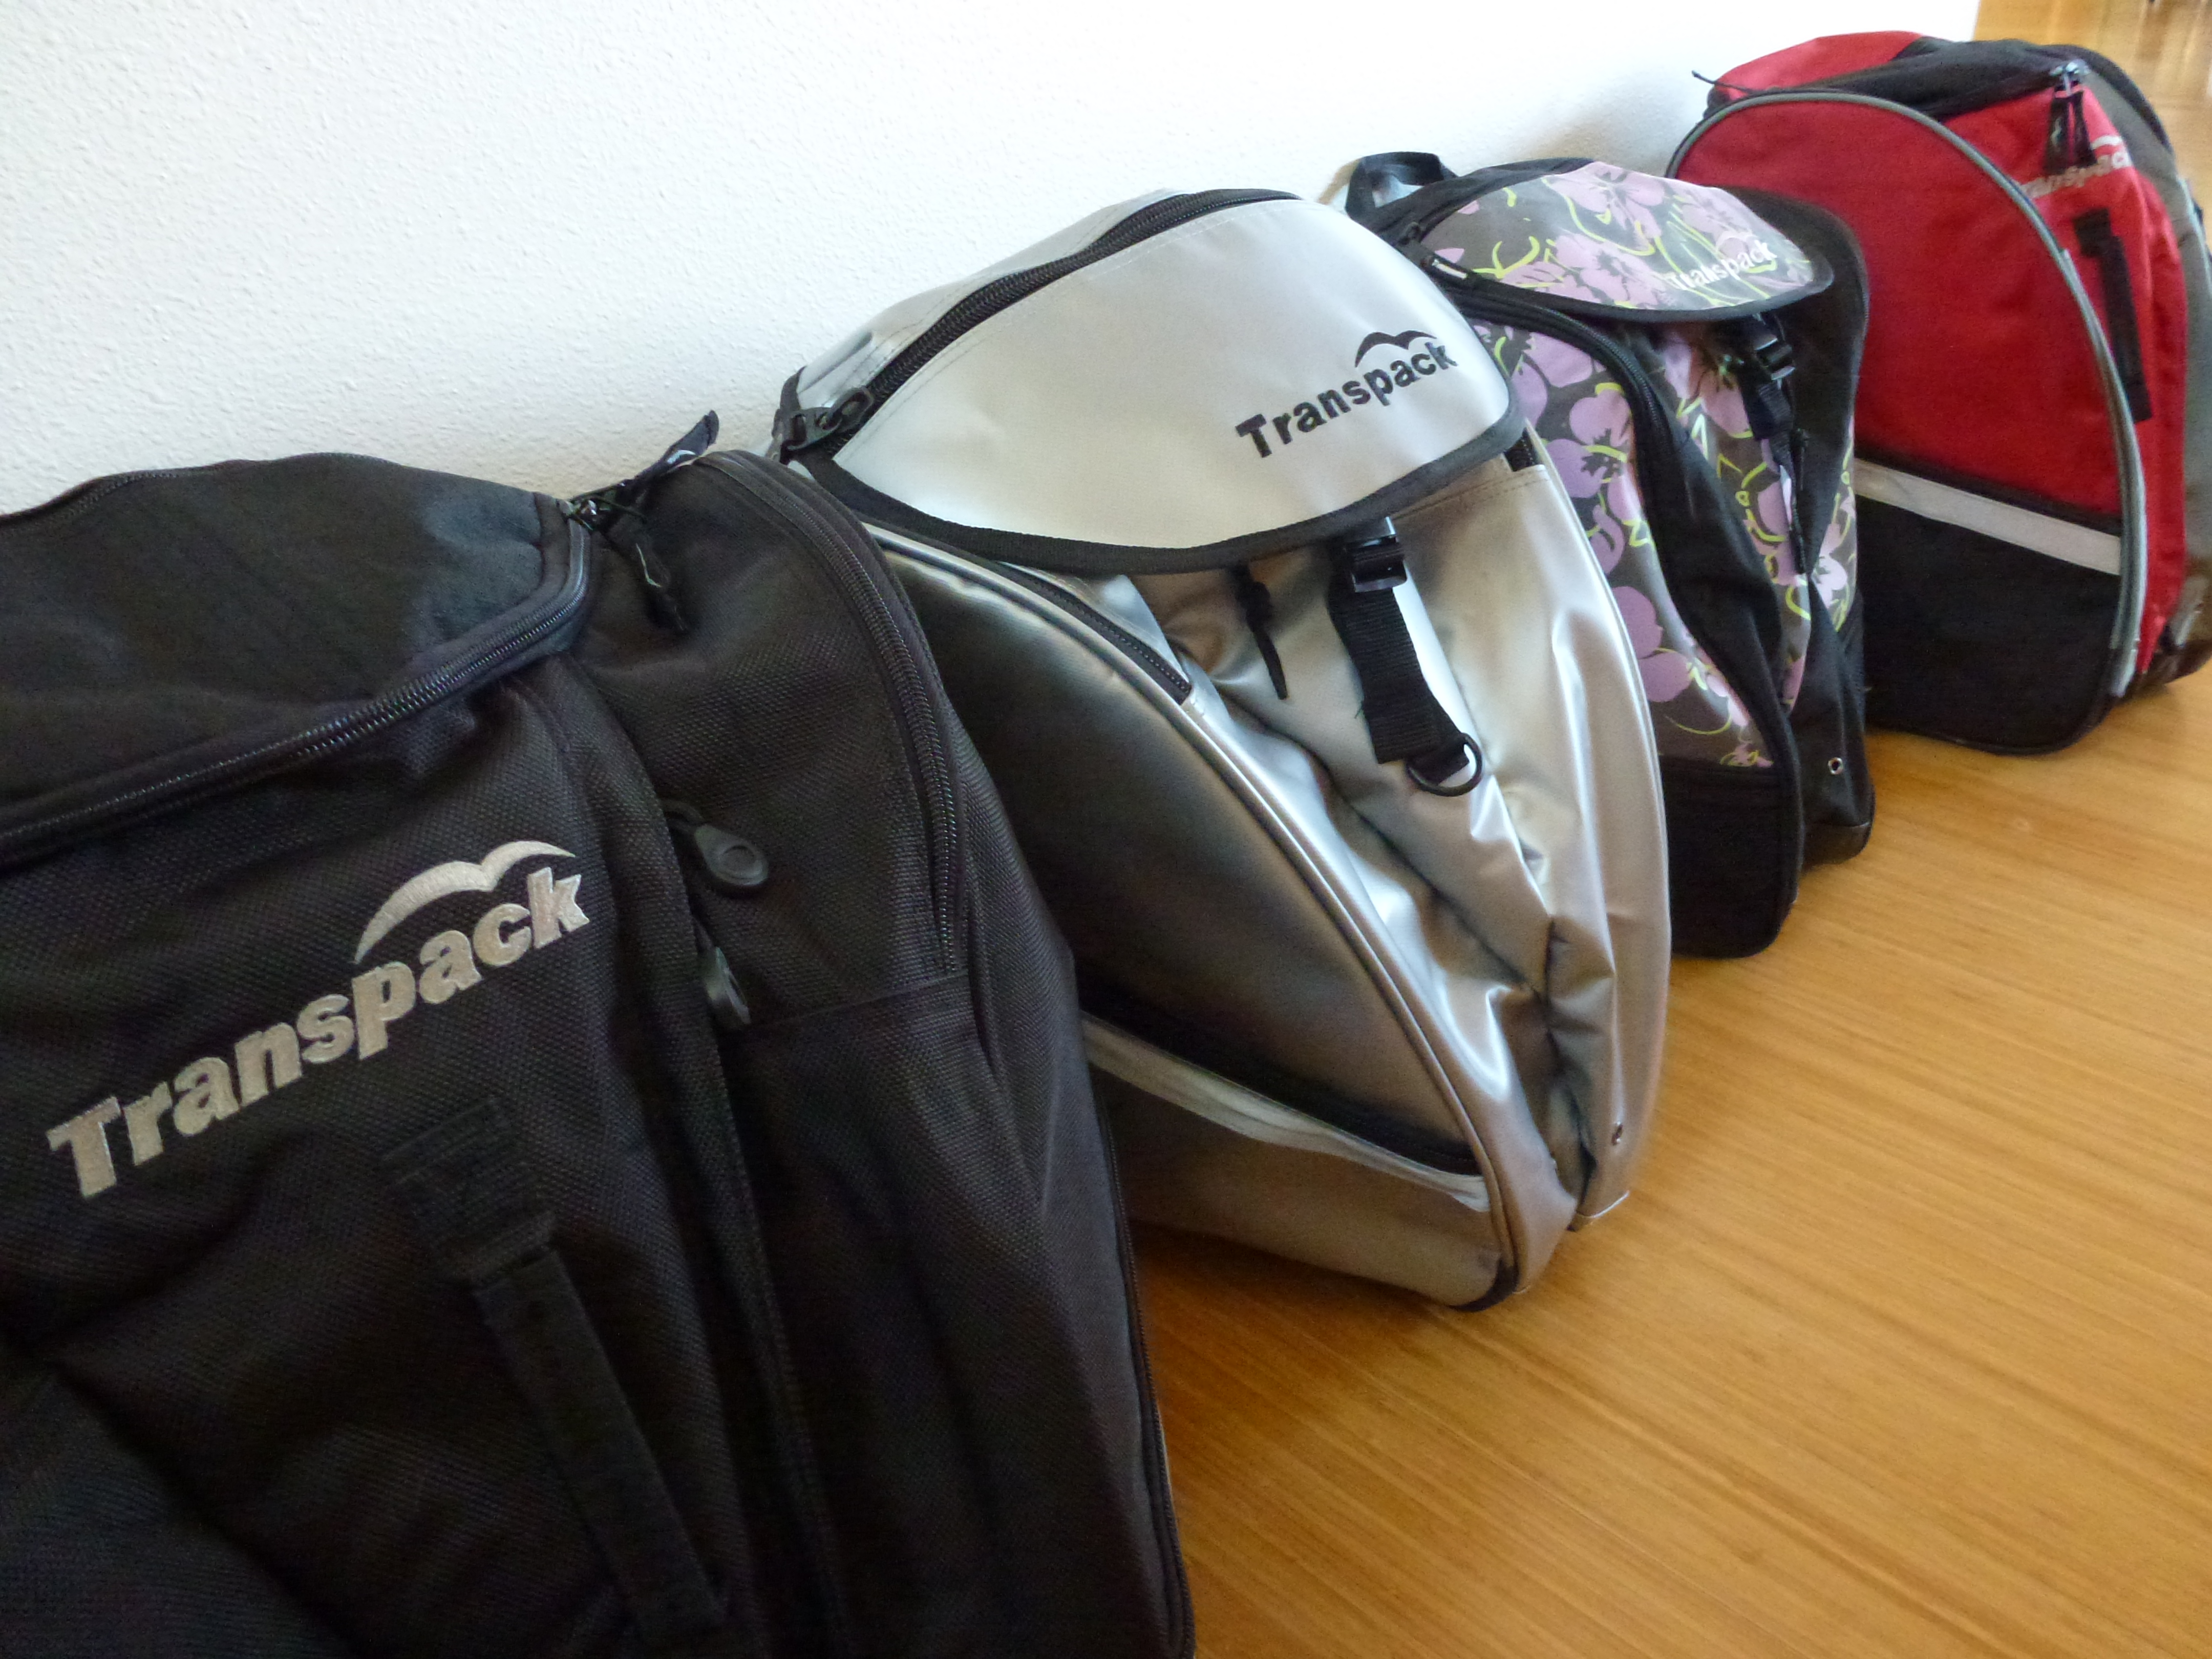 Everyone Carries Their Own Gear Transpack Bags The